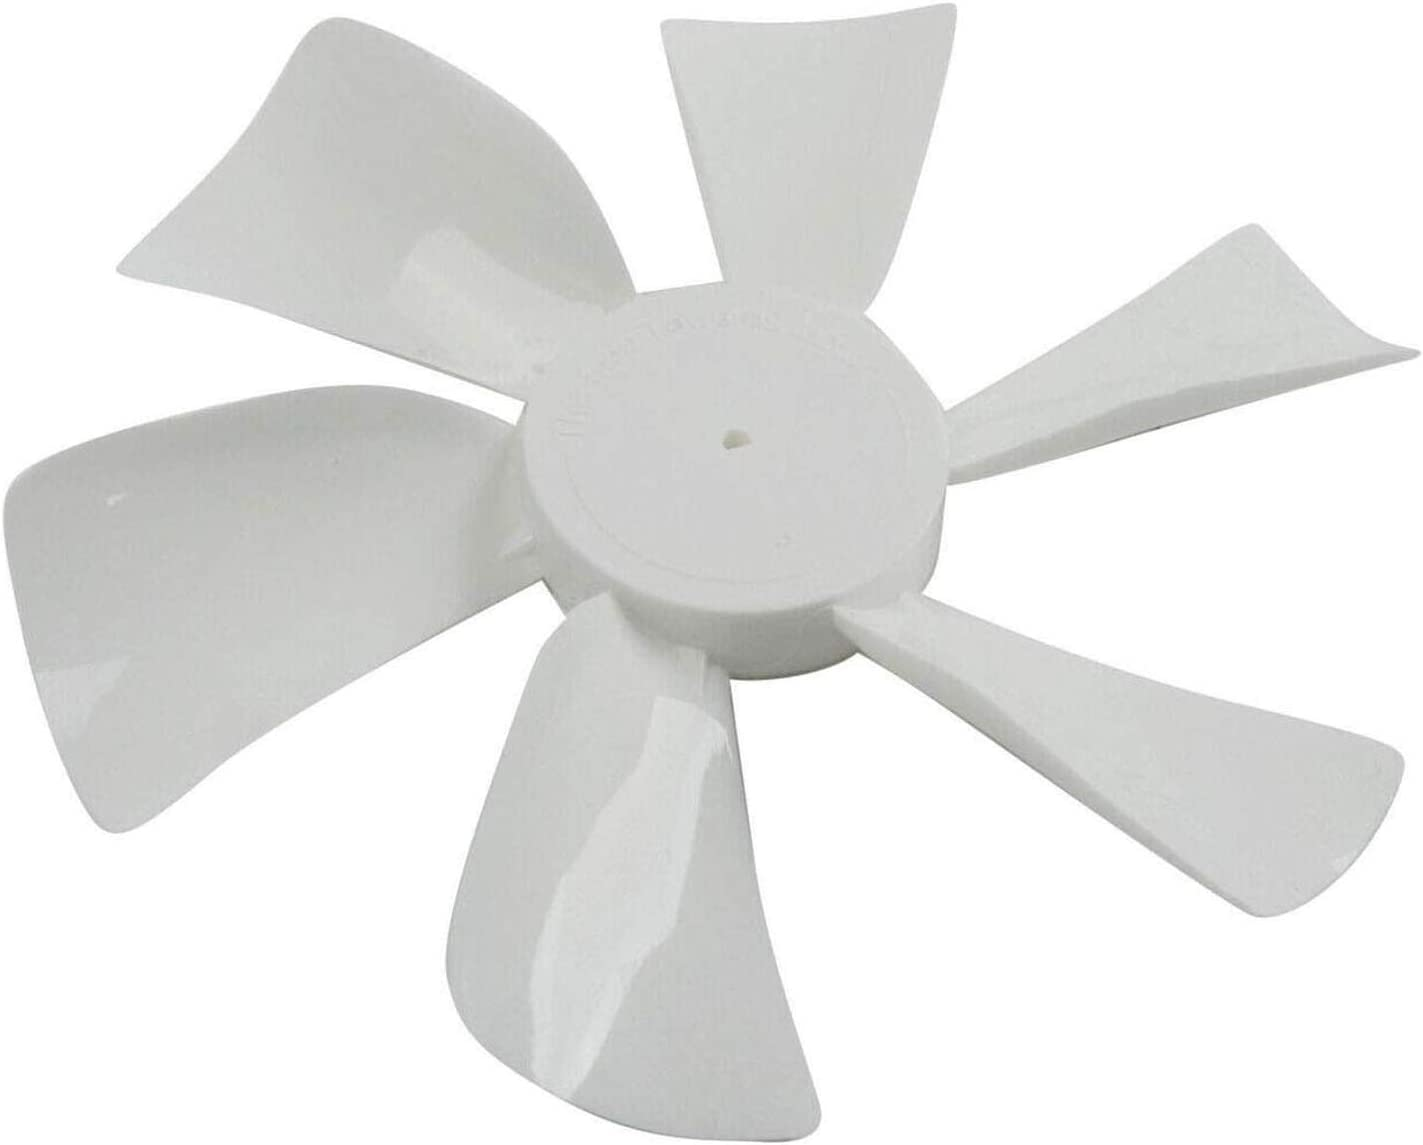 """Dumble Fan Blades Replacement with 0.094/"""" D-Bore 6/"""" Inch White RV Bathroom Fan Blade Replacement Camper Fan Blade"""